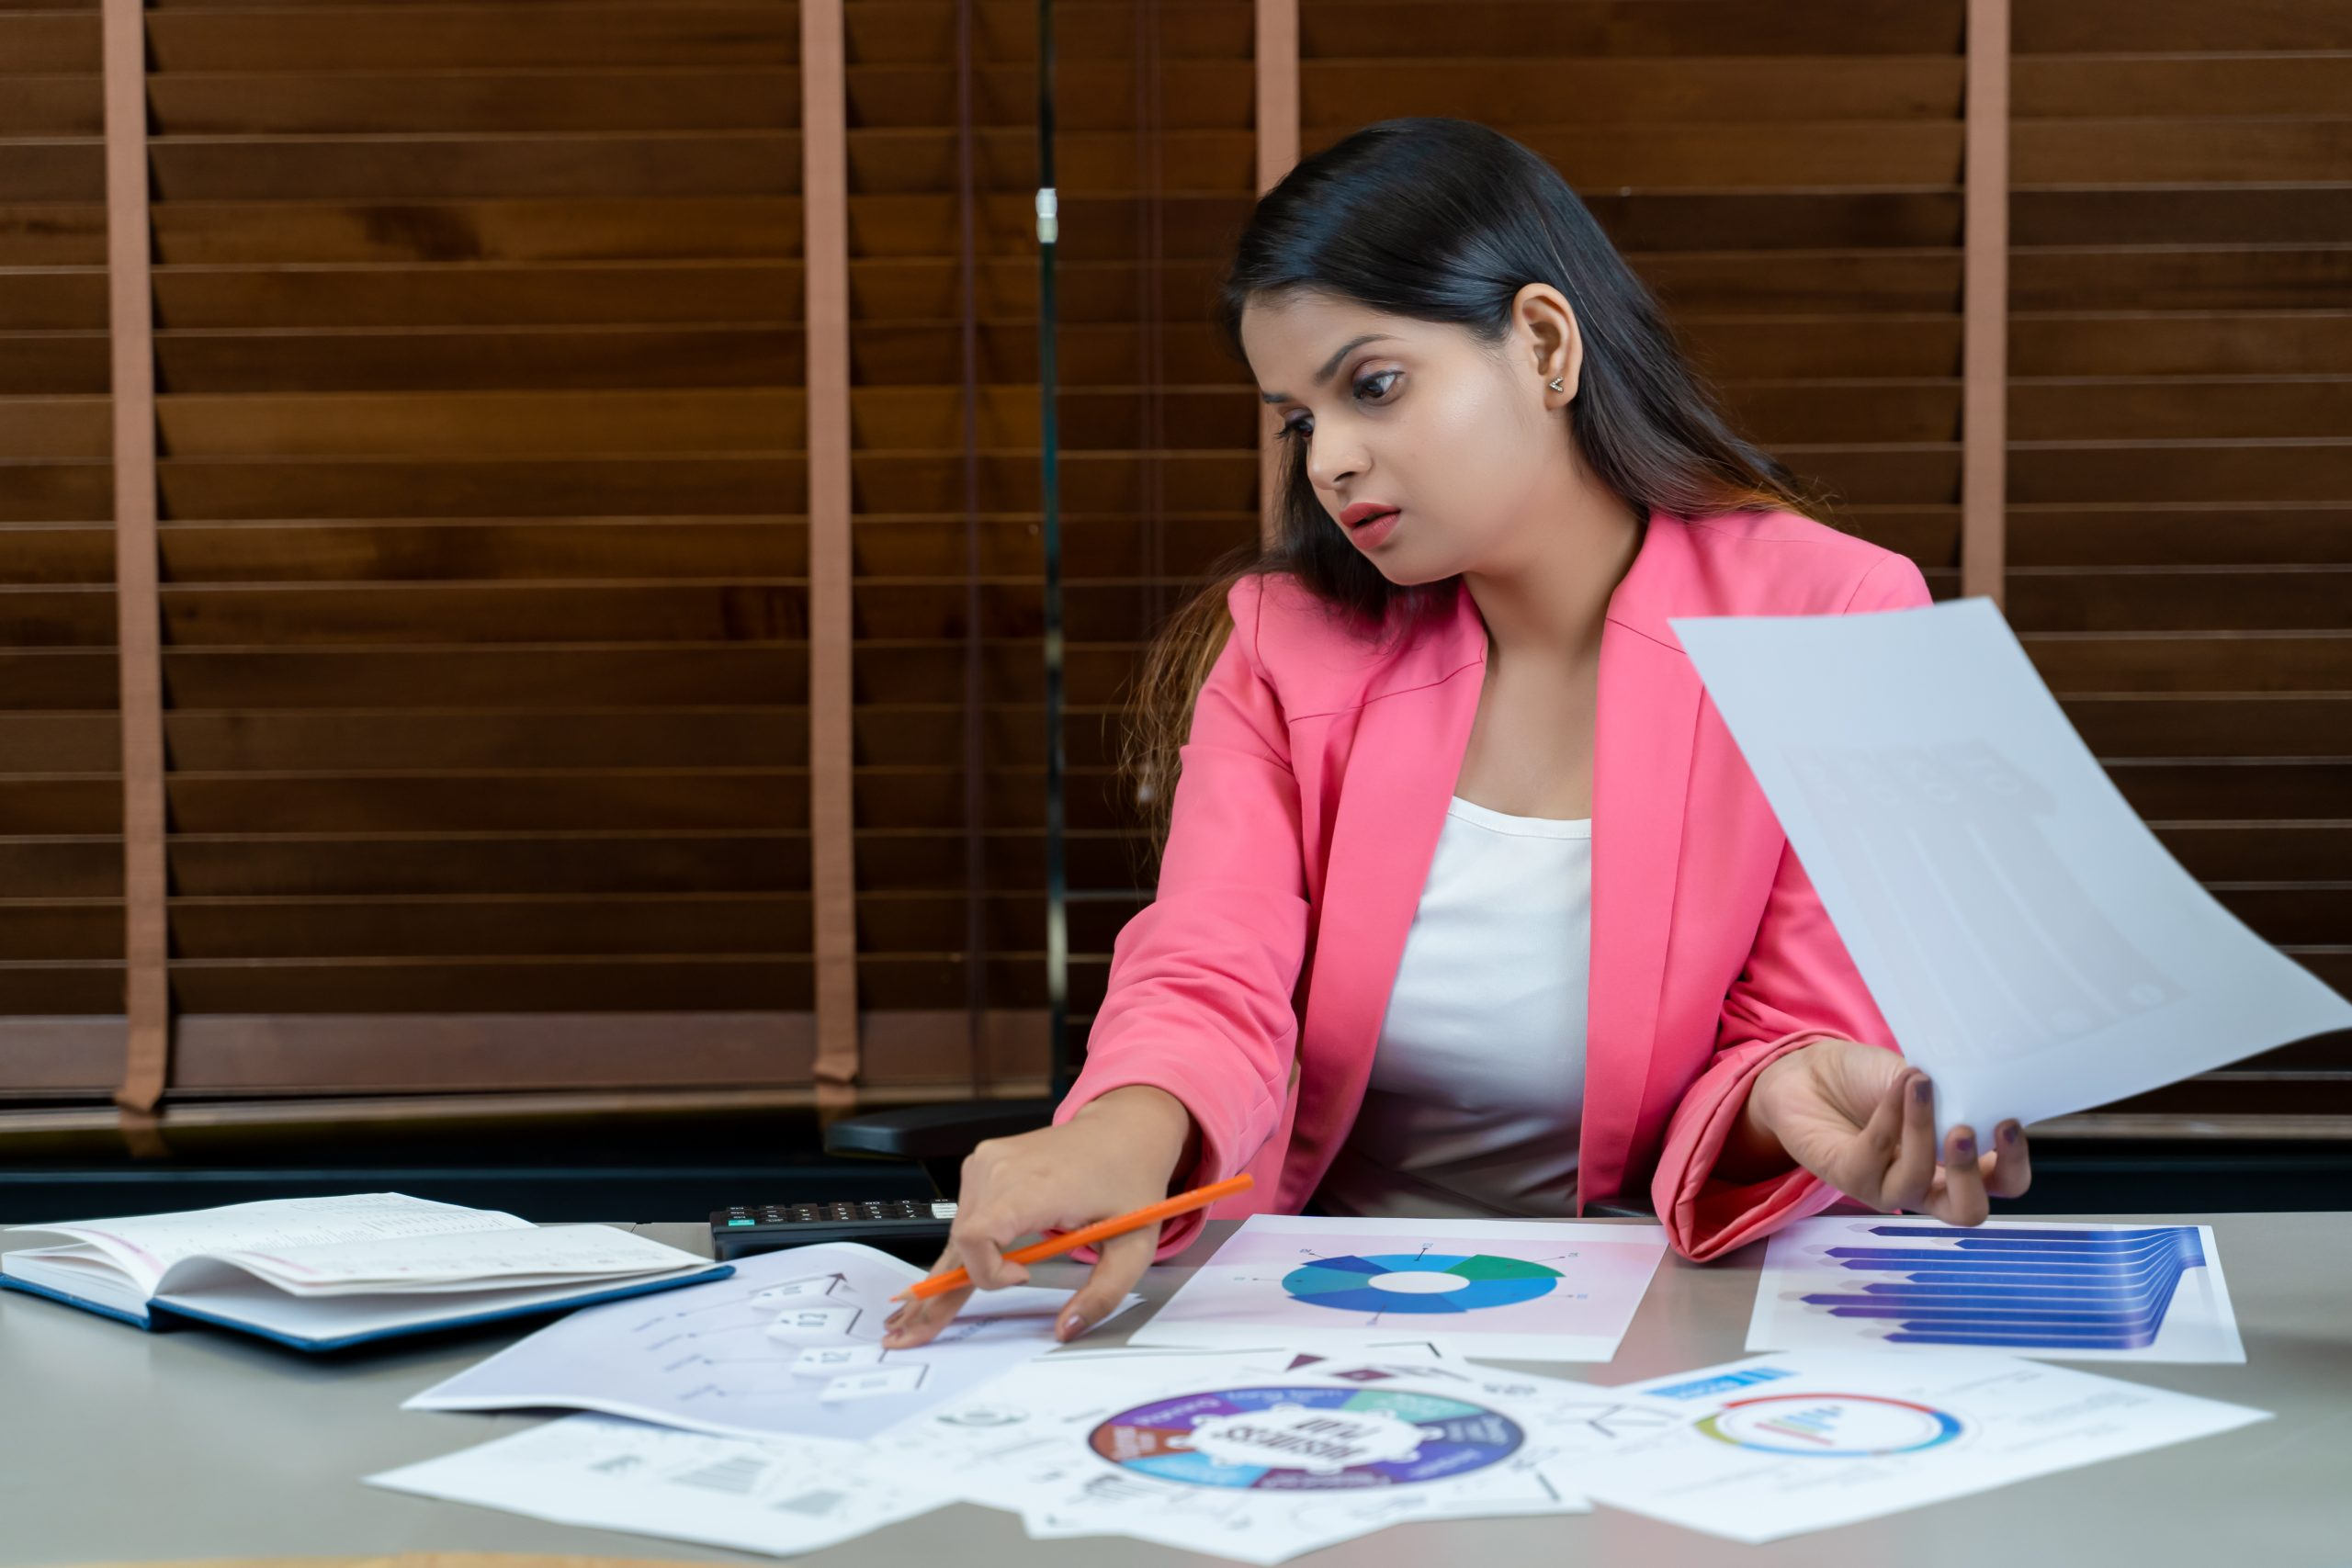 A girl working on a business project